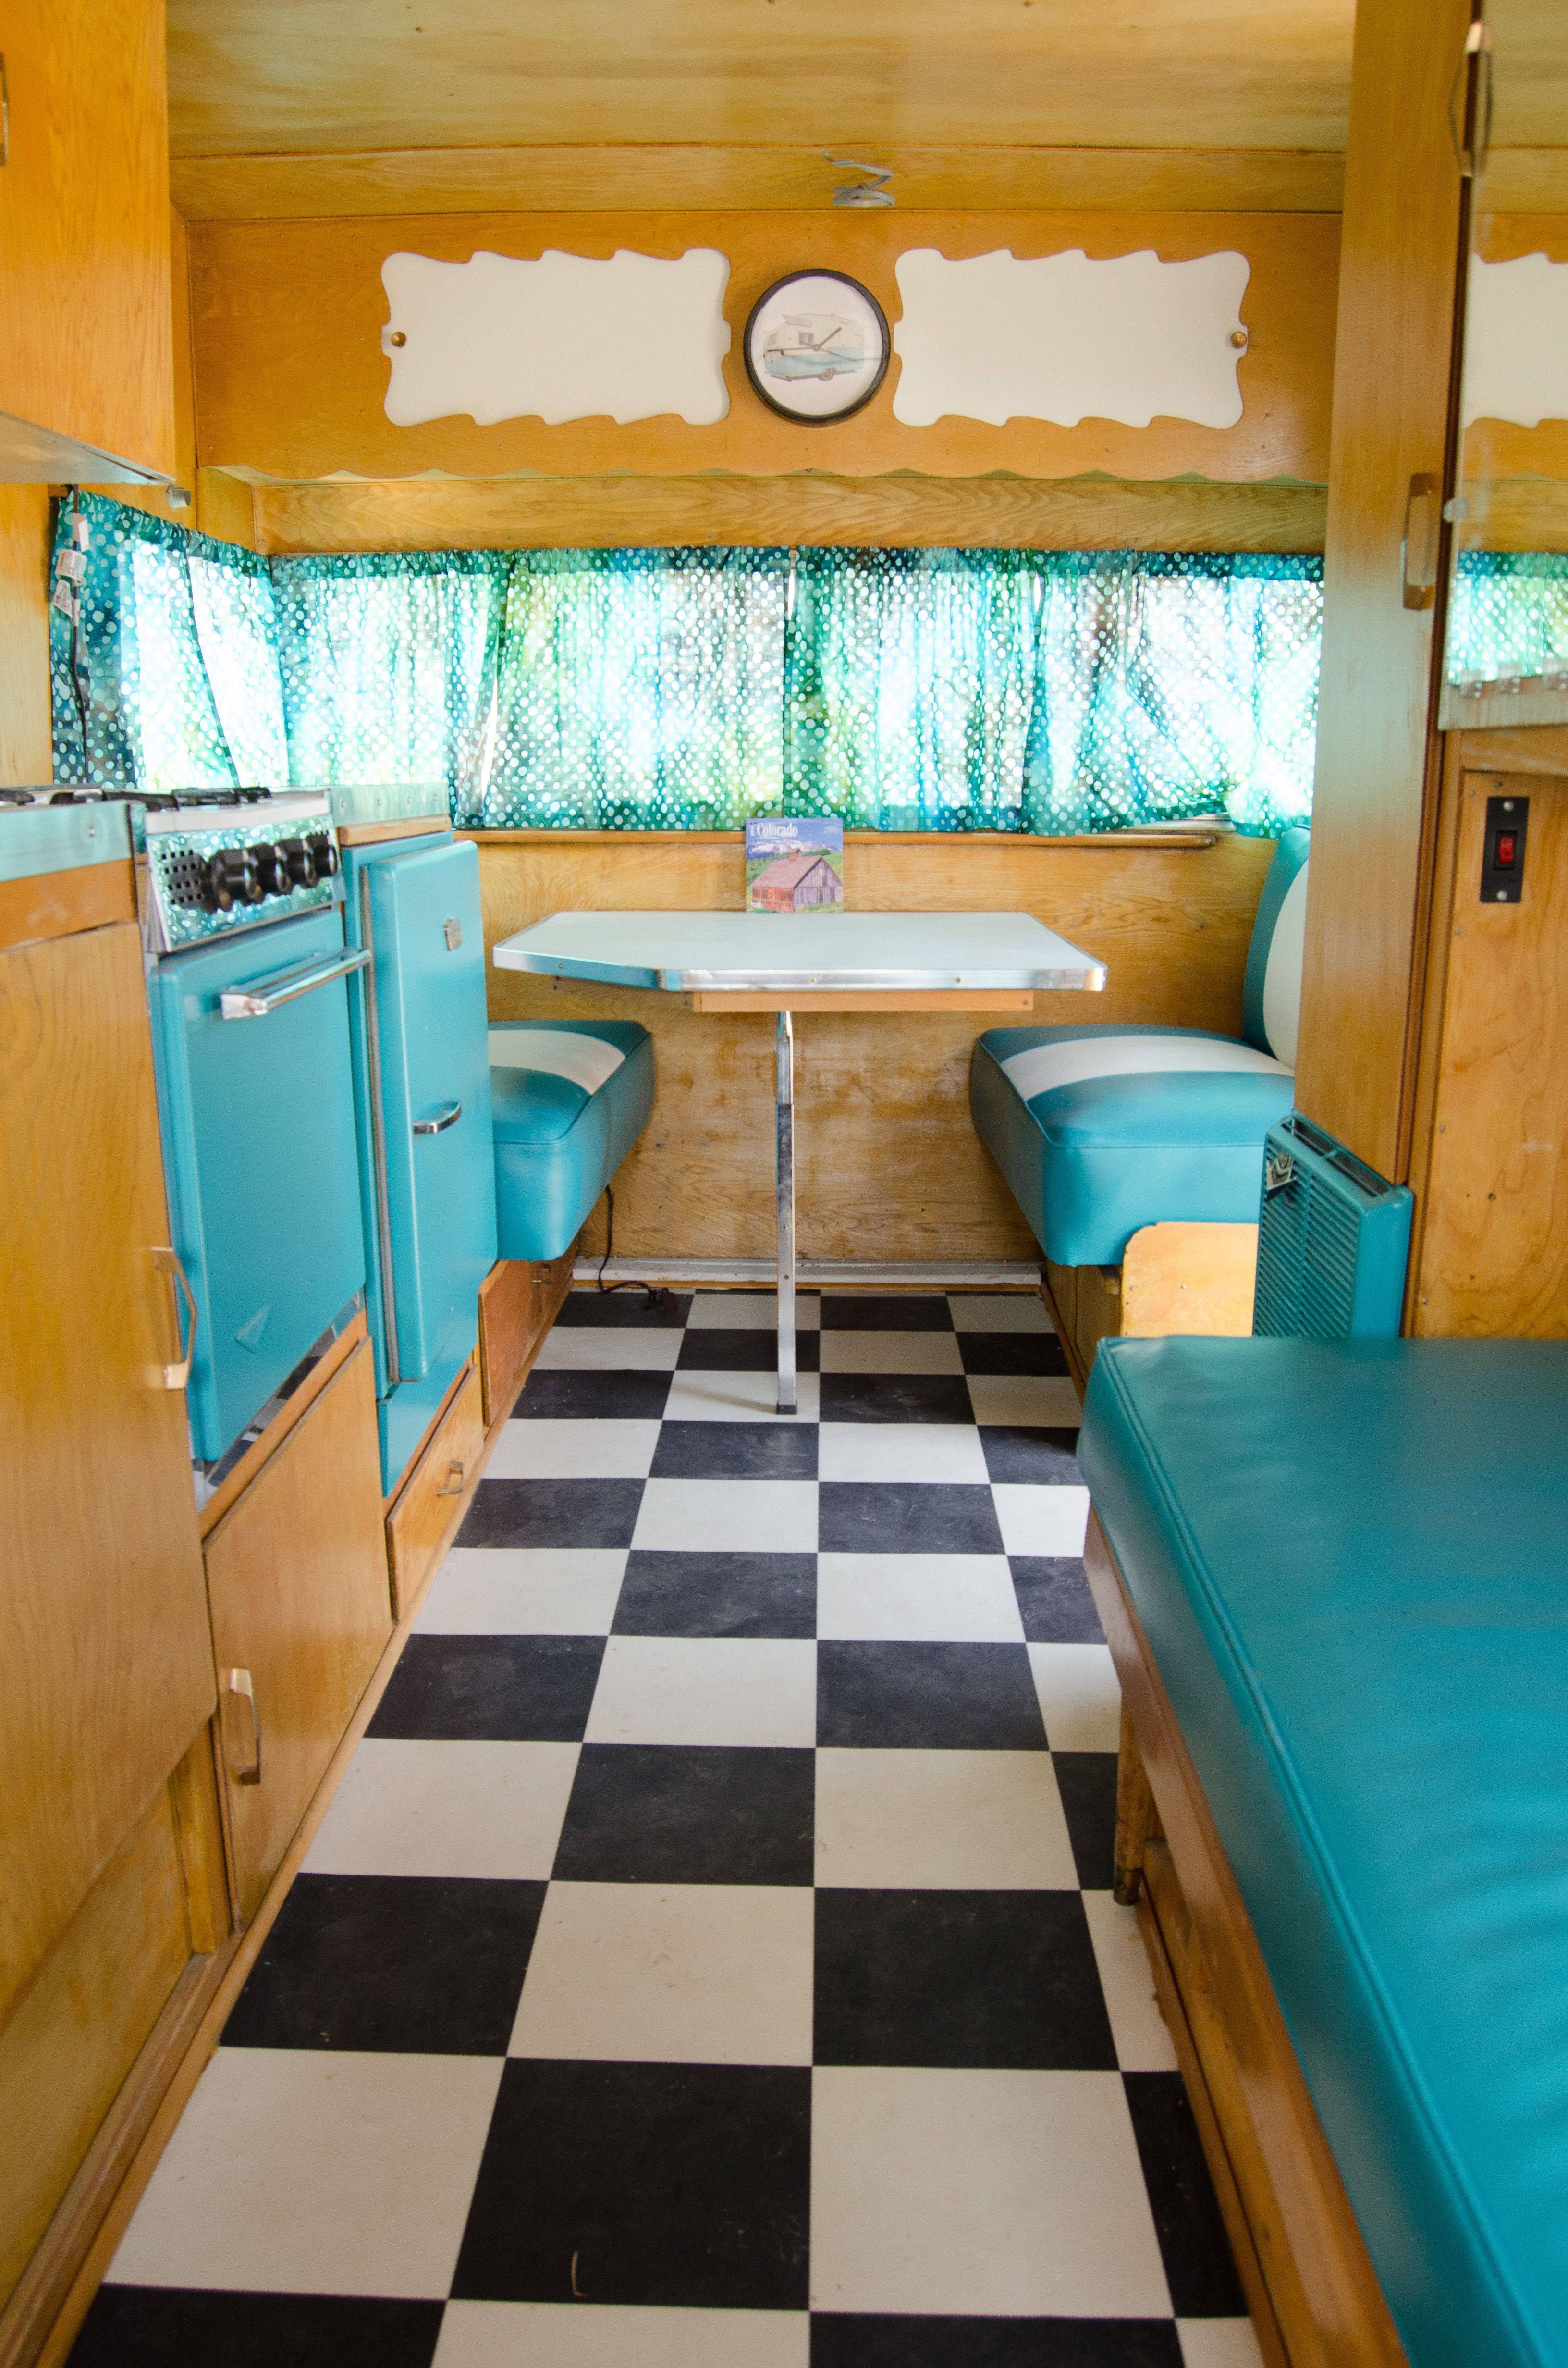 Our 1964 Shasta Airflyte Refinished Interior March 2014 Shasta Style Camping Pinterest